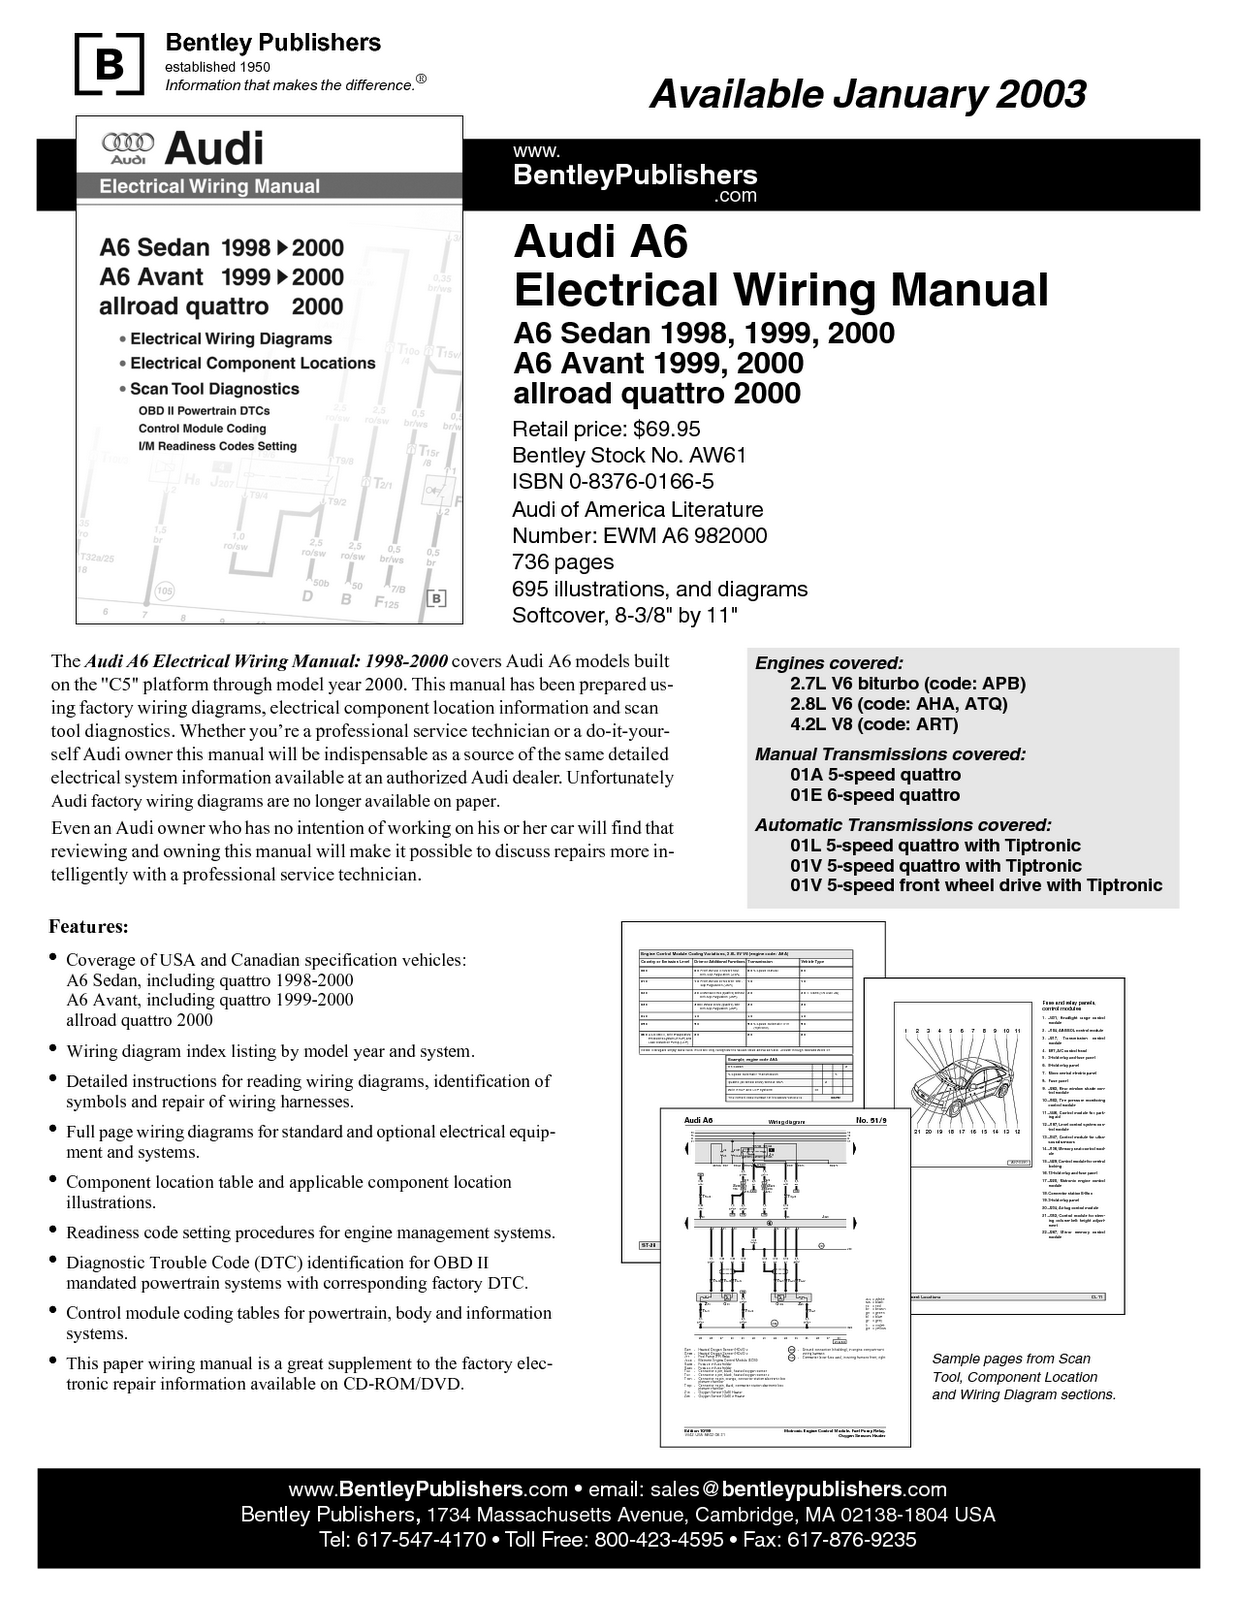 Electrical Wiring Manual 2003 Audi A6